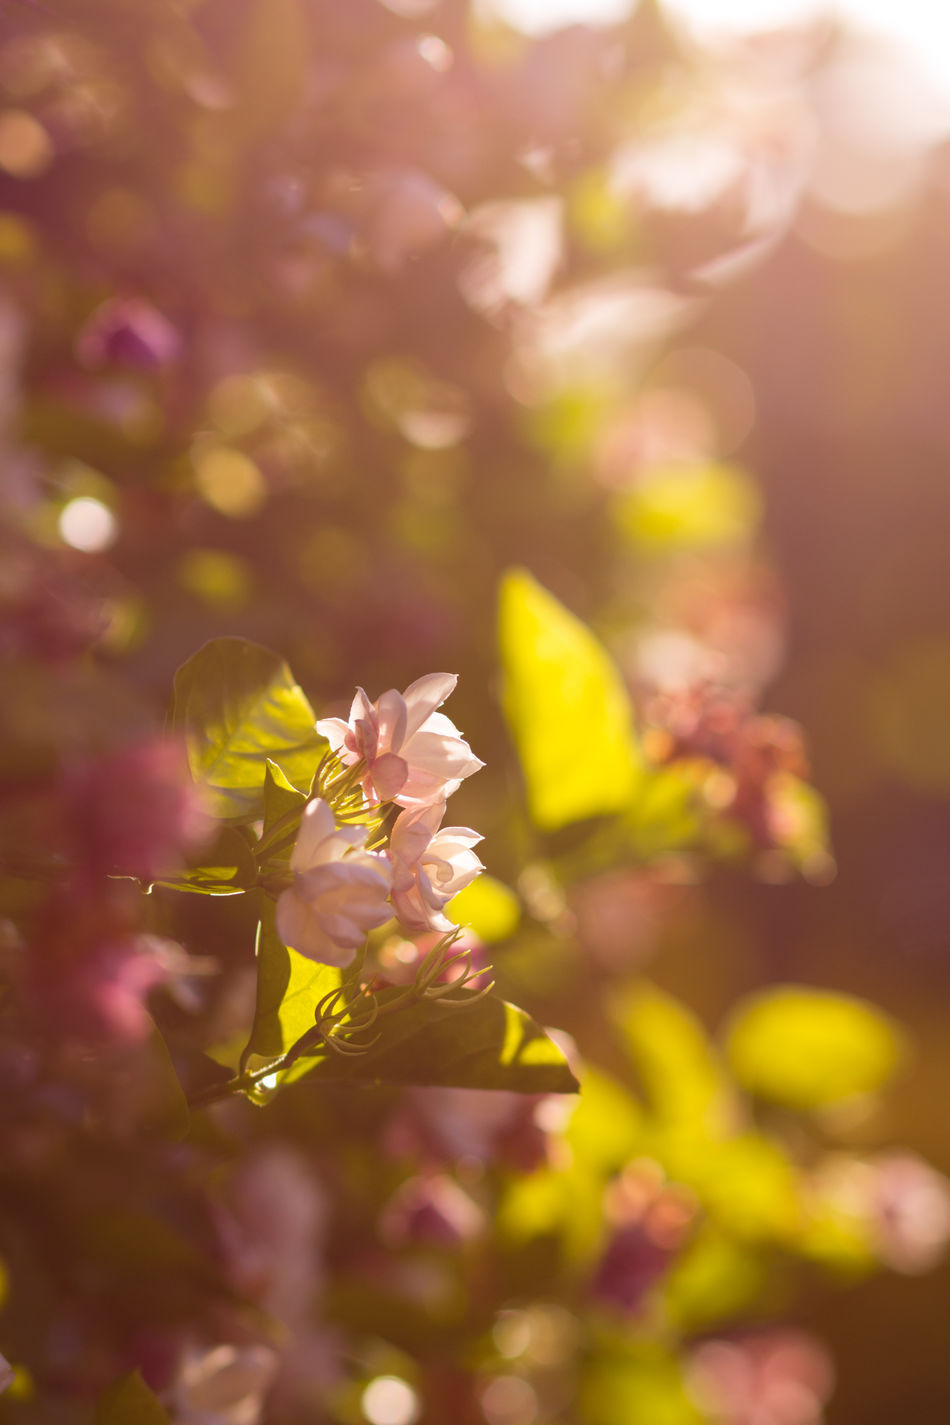 Beautiful Beauty In Nature Day Delicate Flower Fragility Freshness Growth Leaves Nature Outdoors Petal Pink Plant